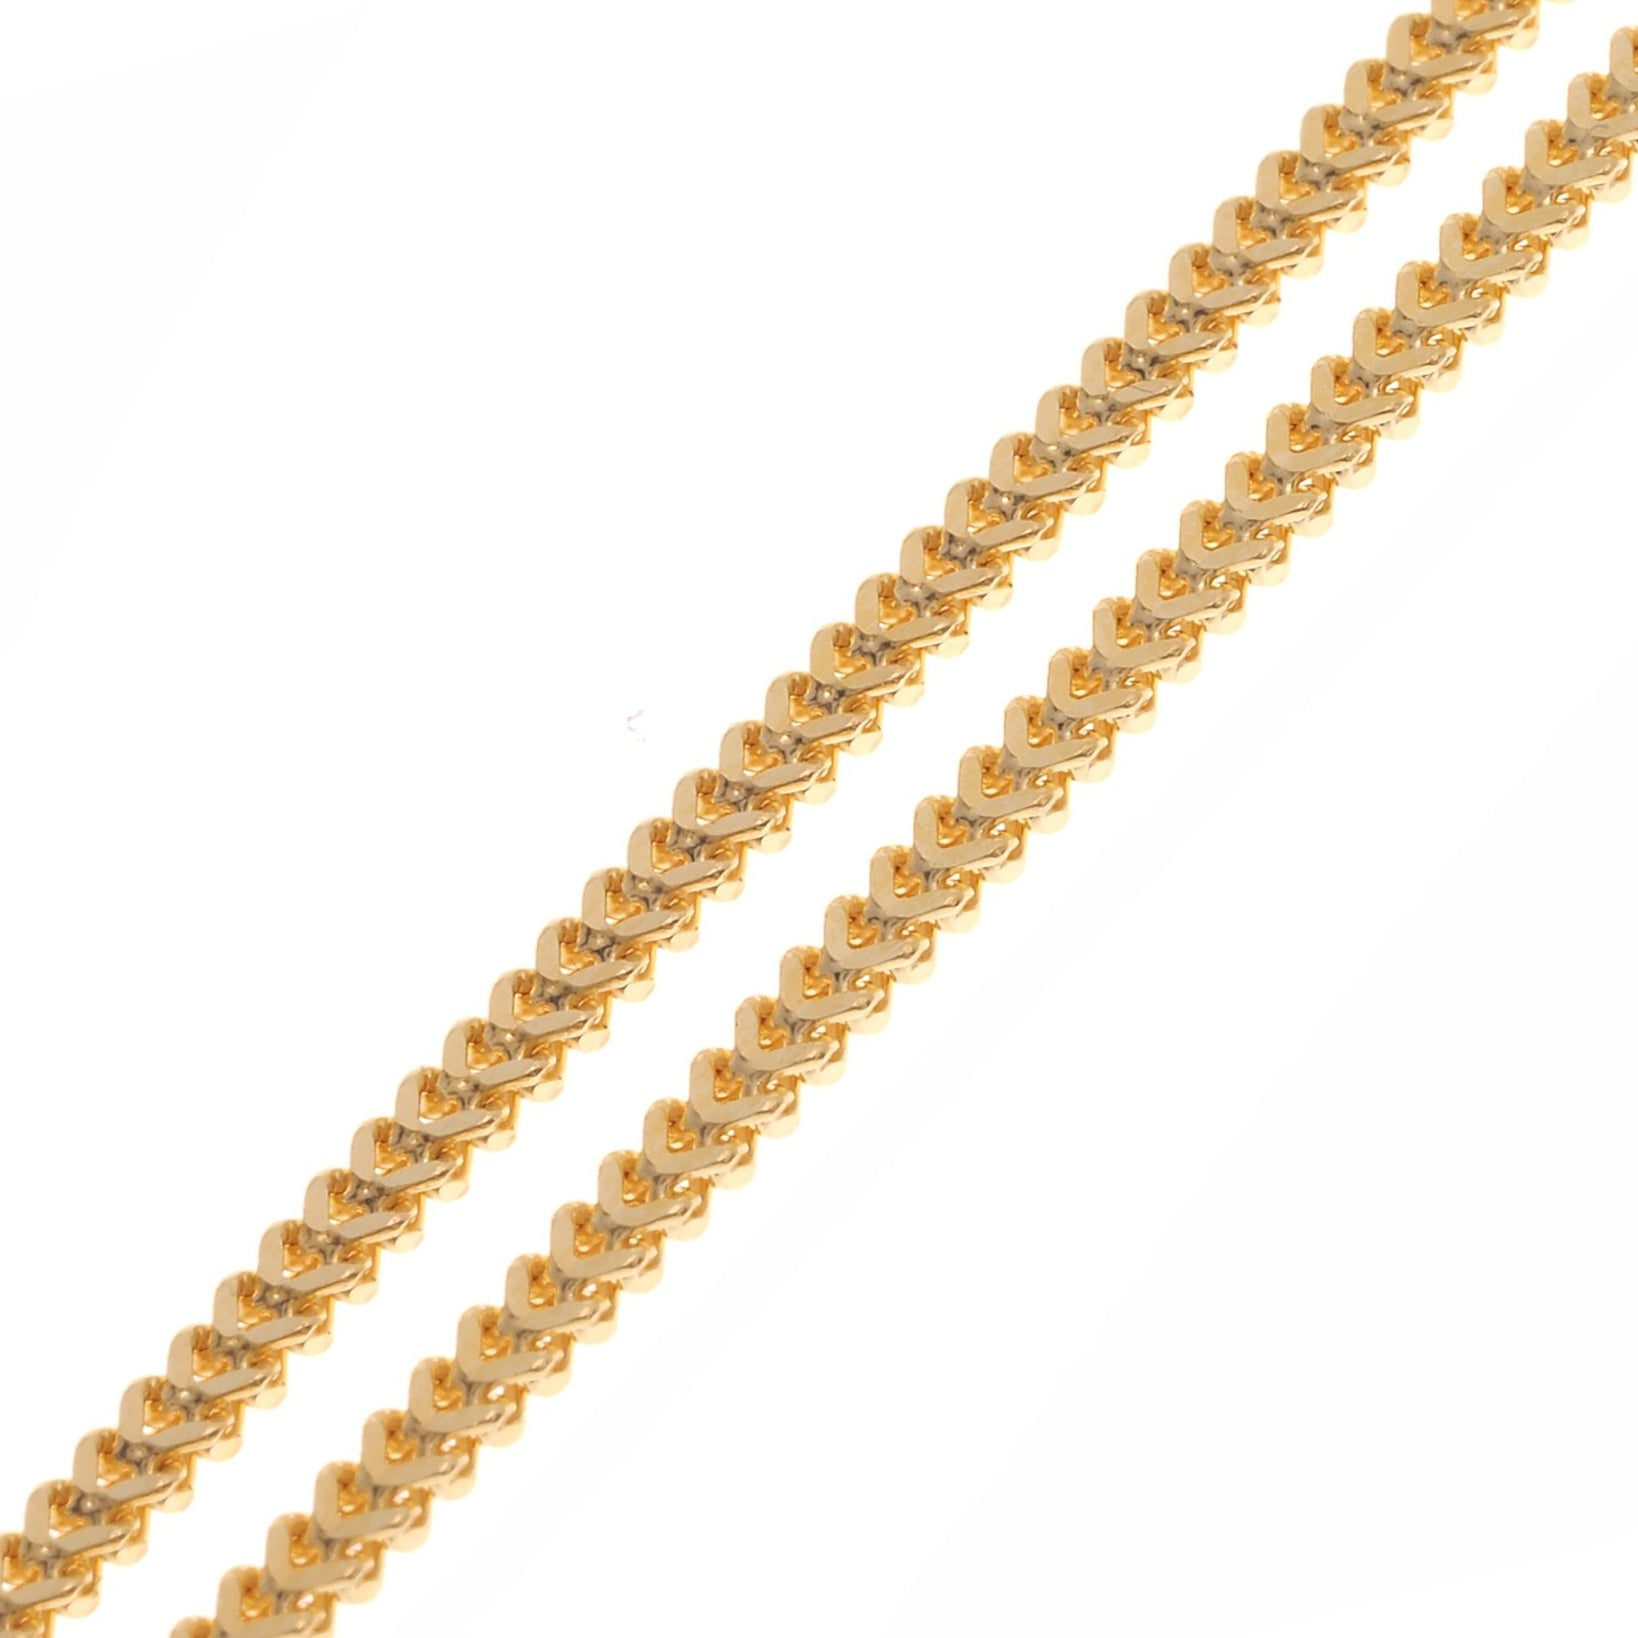 22ct Gold Foxtail Unisex Chain with a lobster clasp C-3799